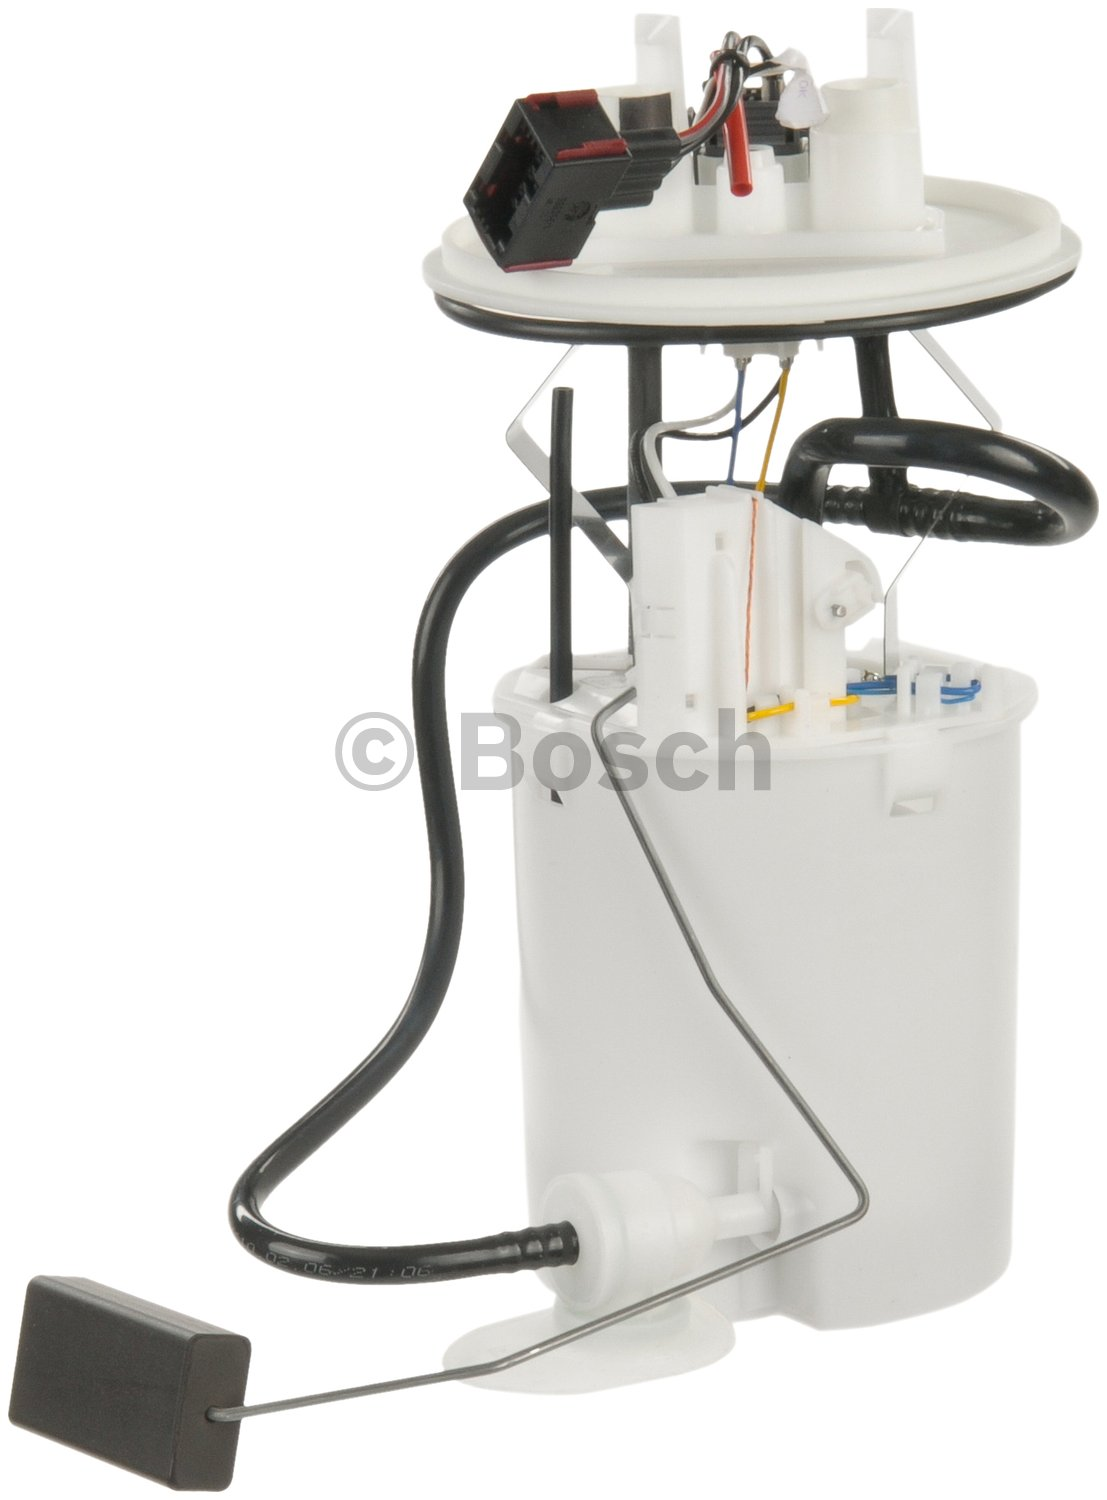 hight resolution of 2003 saab 9 5 fuel pump module assembly bs 69703